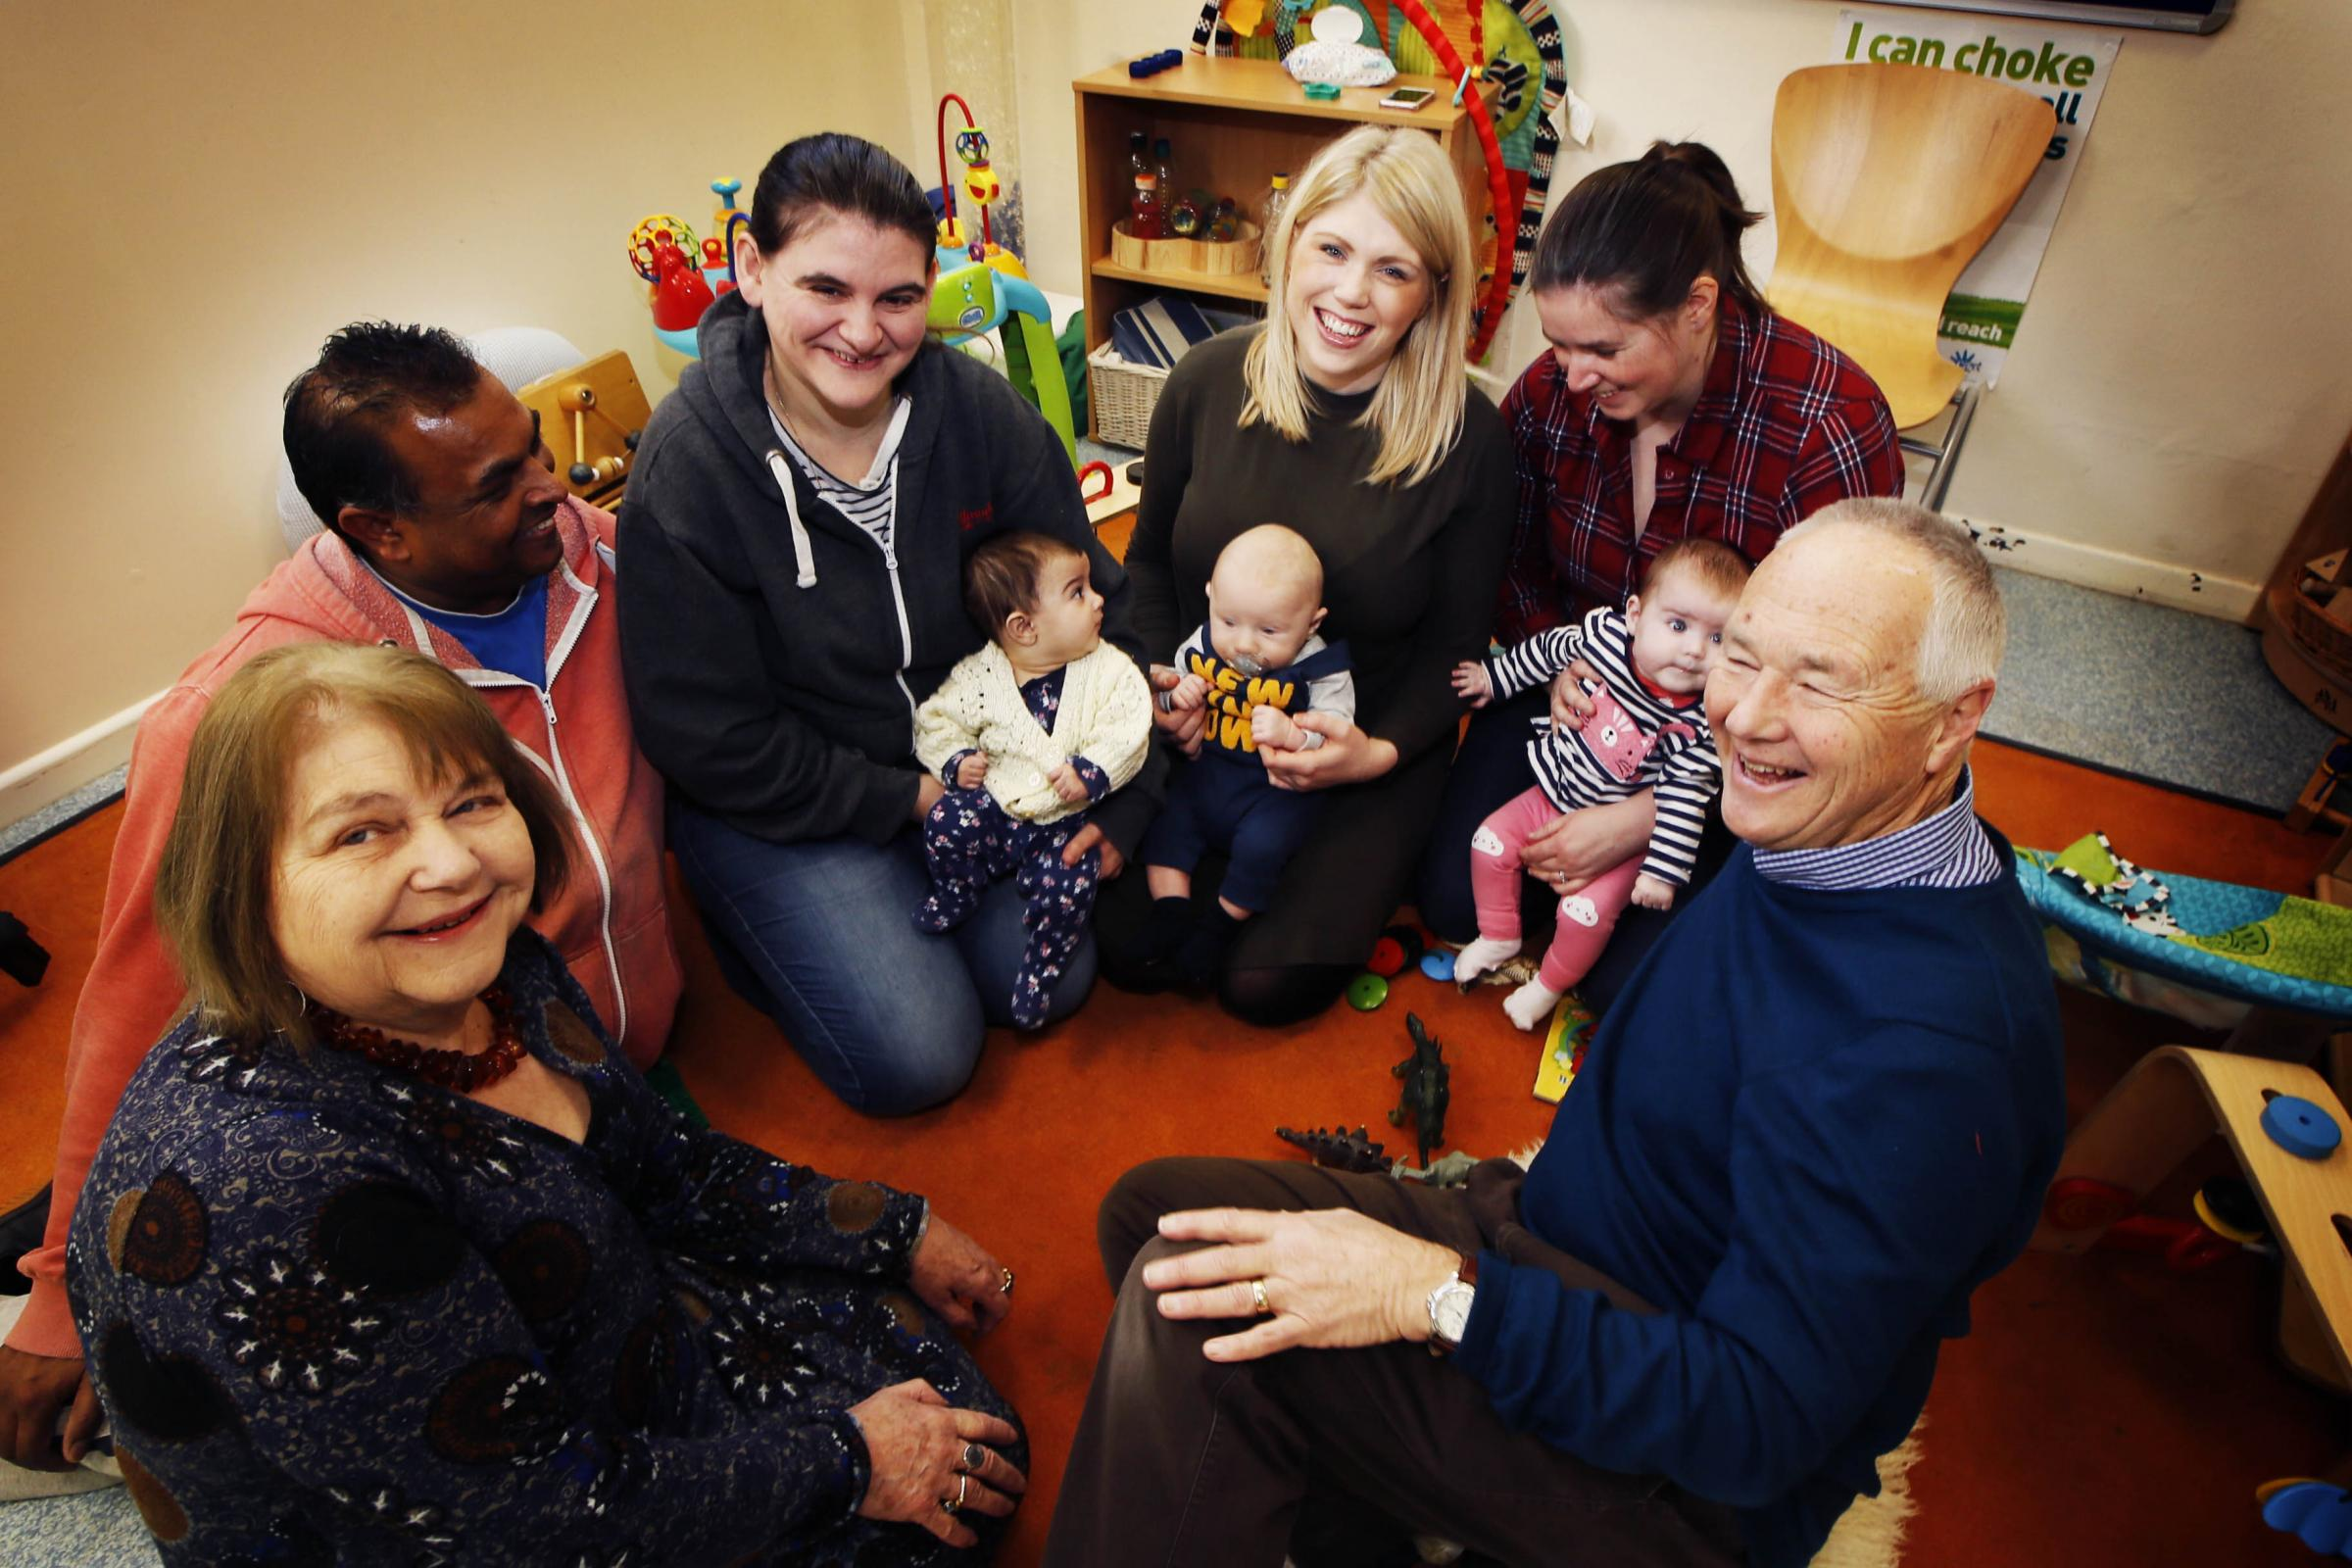 Manager and parents at Wheatley's Maple Tree children's centre. Left-to-right, Anne Purse, Andrew Lewis and Heidi Martin with Lola Lewis, Jess Webb with Jax Clarke, Lauren Newport with Mia Newport and Chris Sewell. Picture: Ed Nix